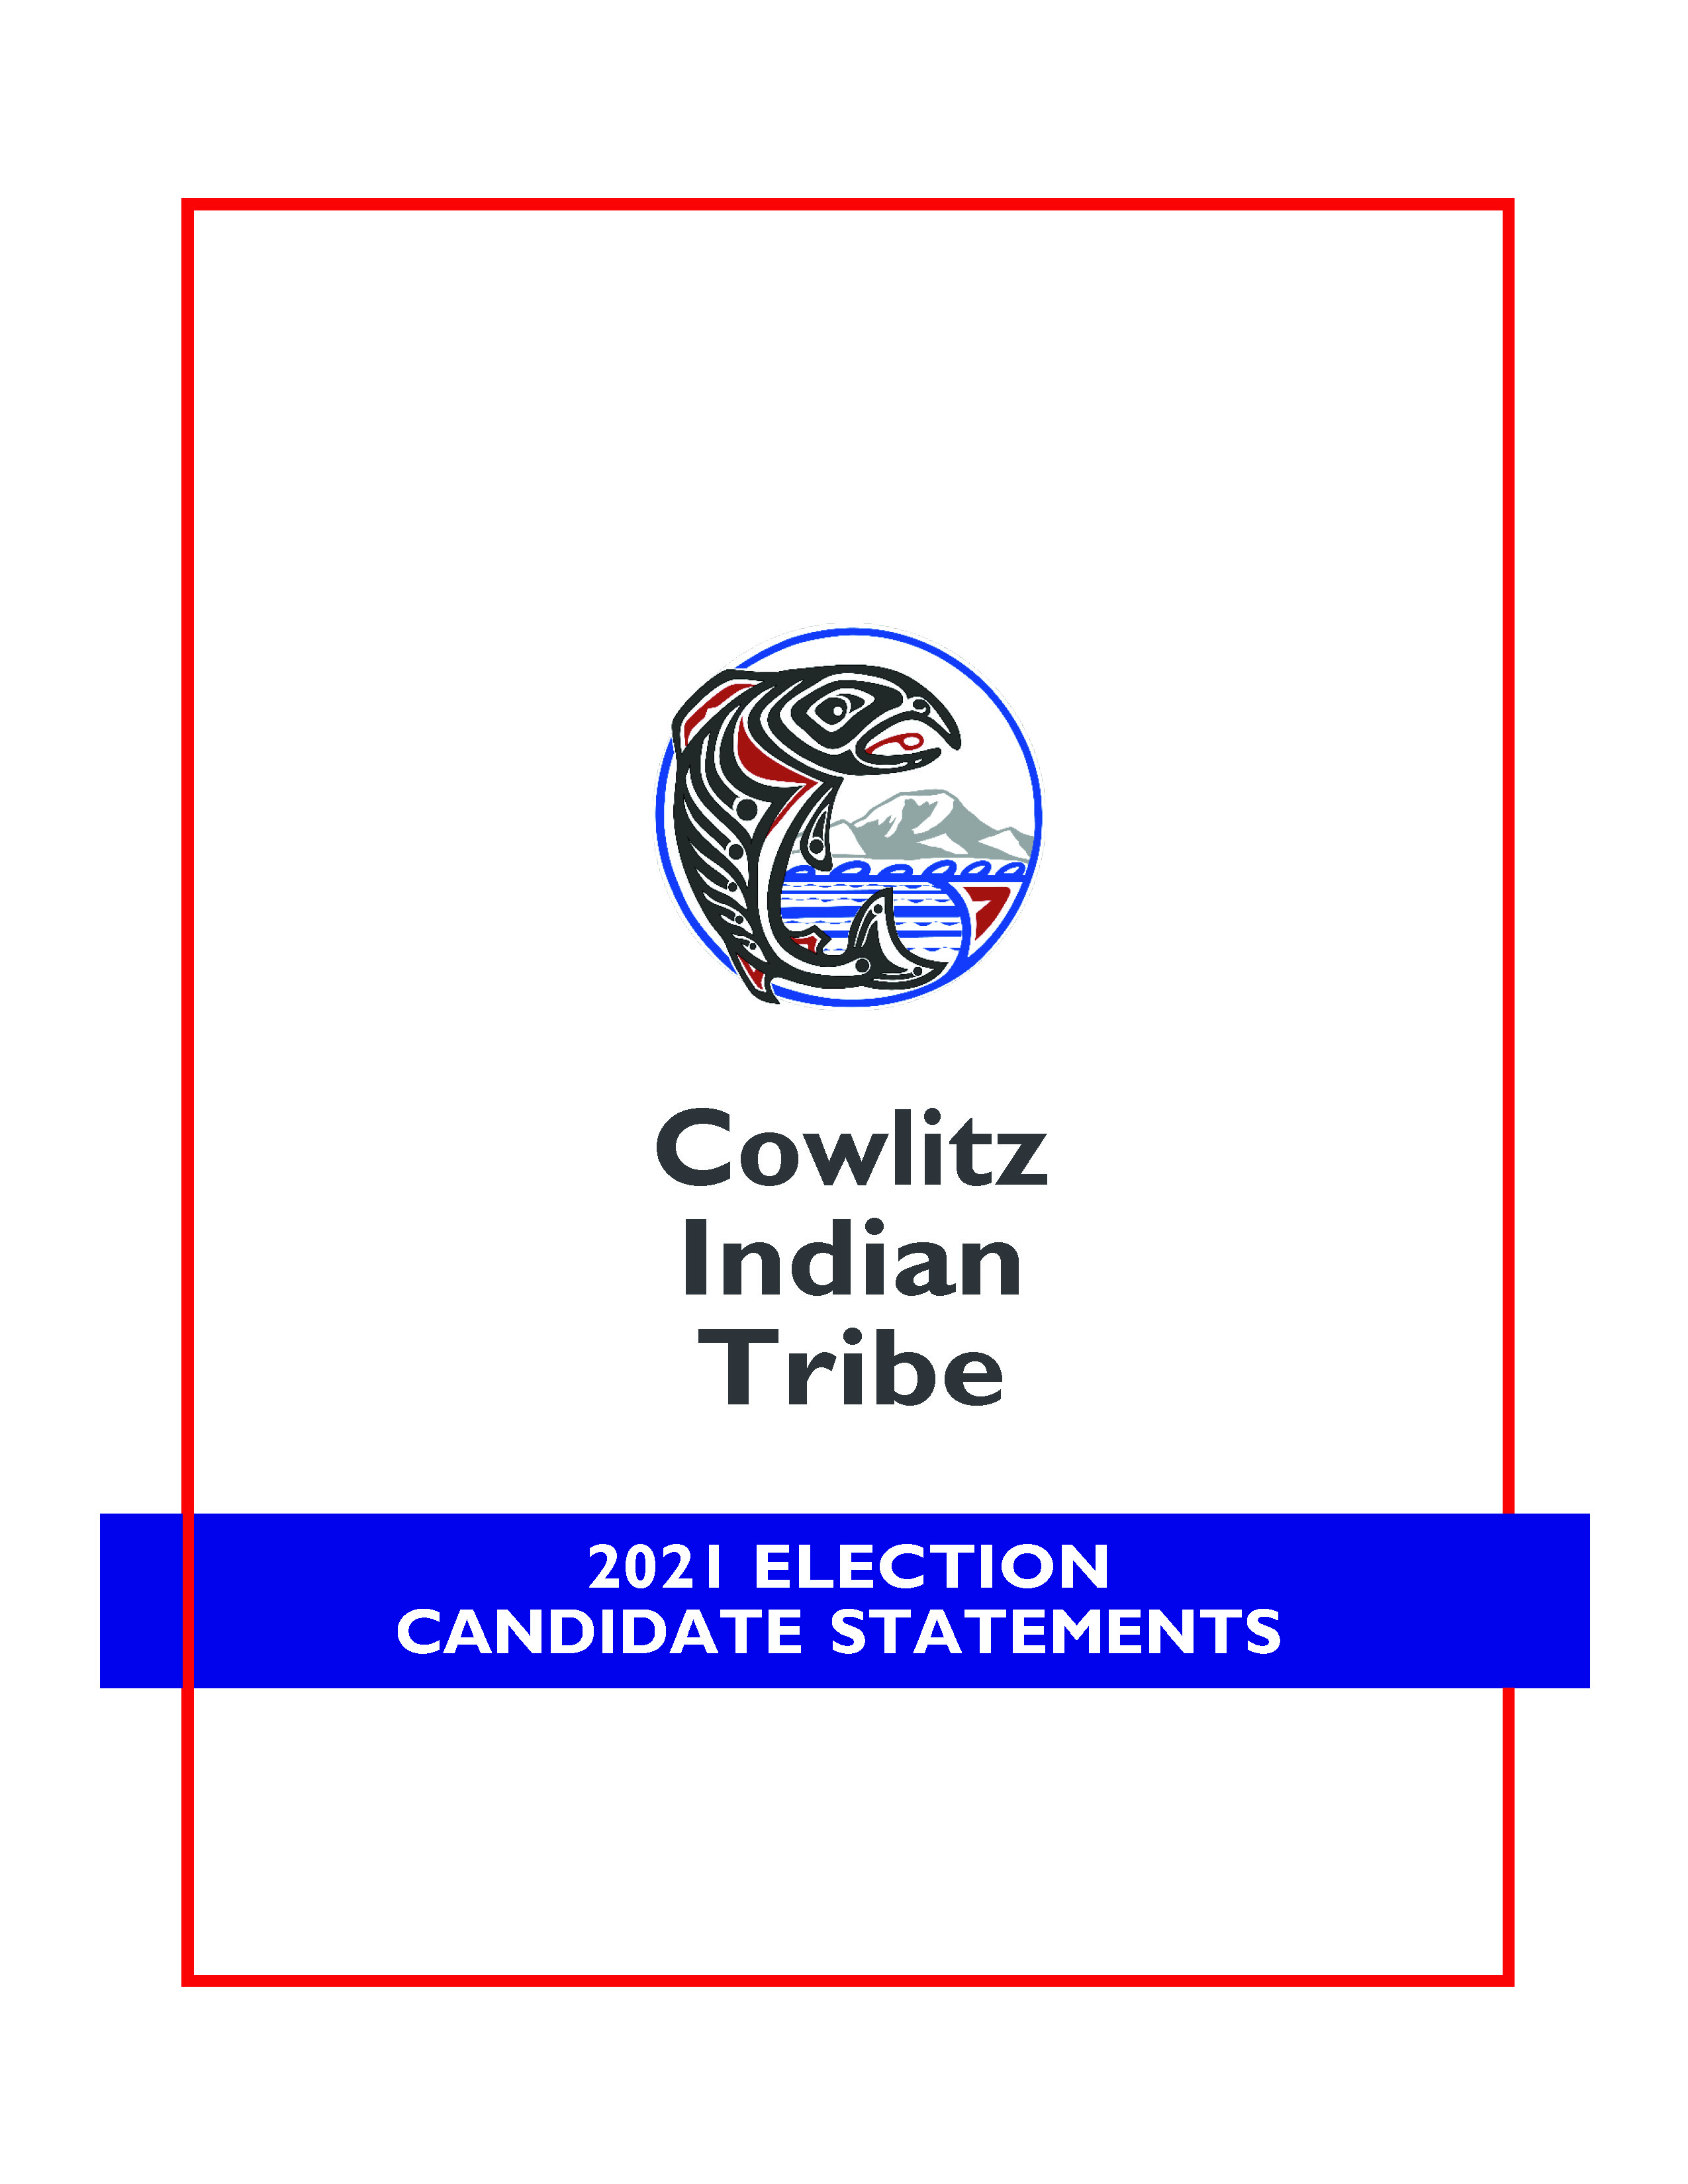 2021 CANDIDATE STATEMENT BOOK